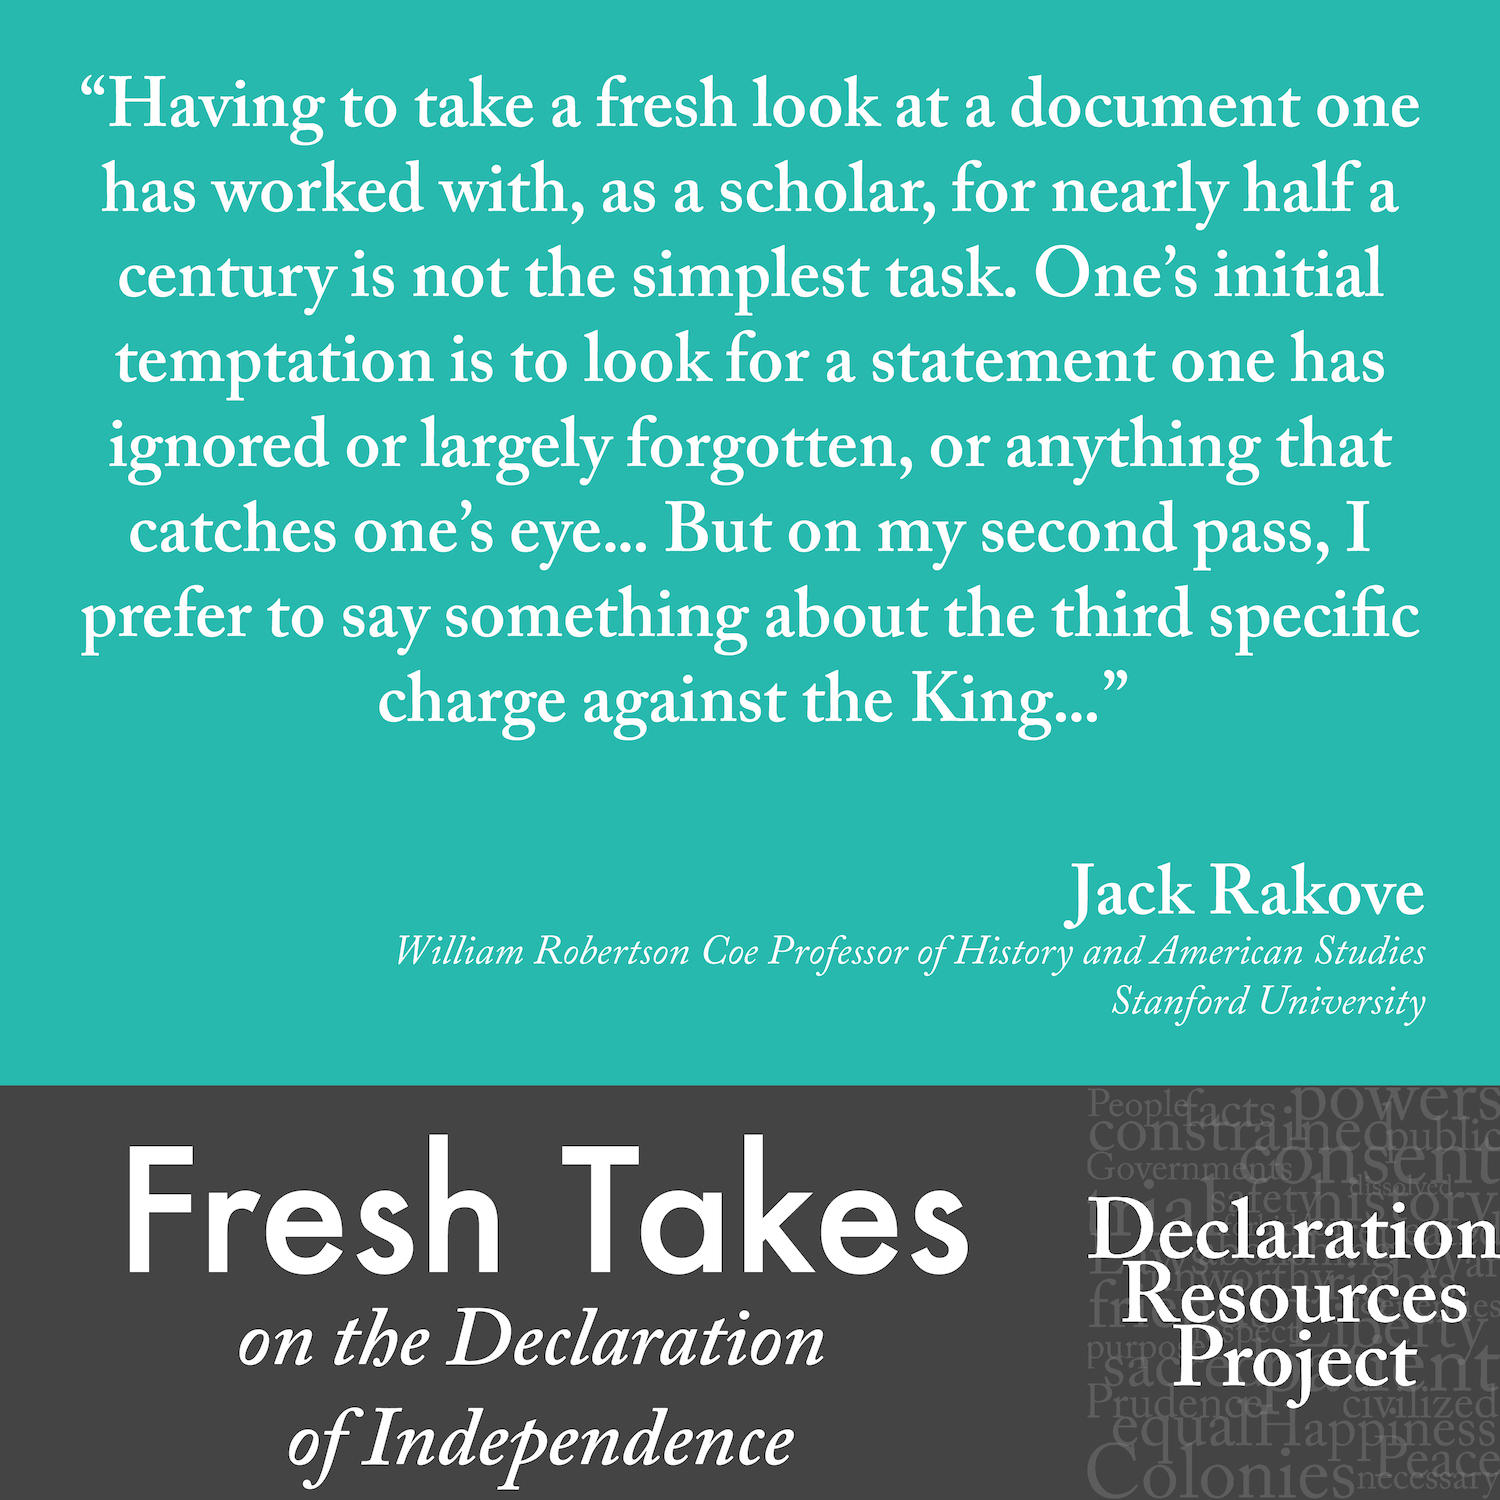 Jack Rakove's Fresh Take on the Declaration of Independence